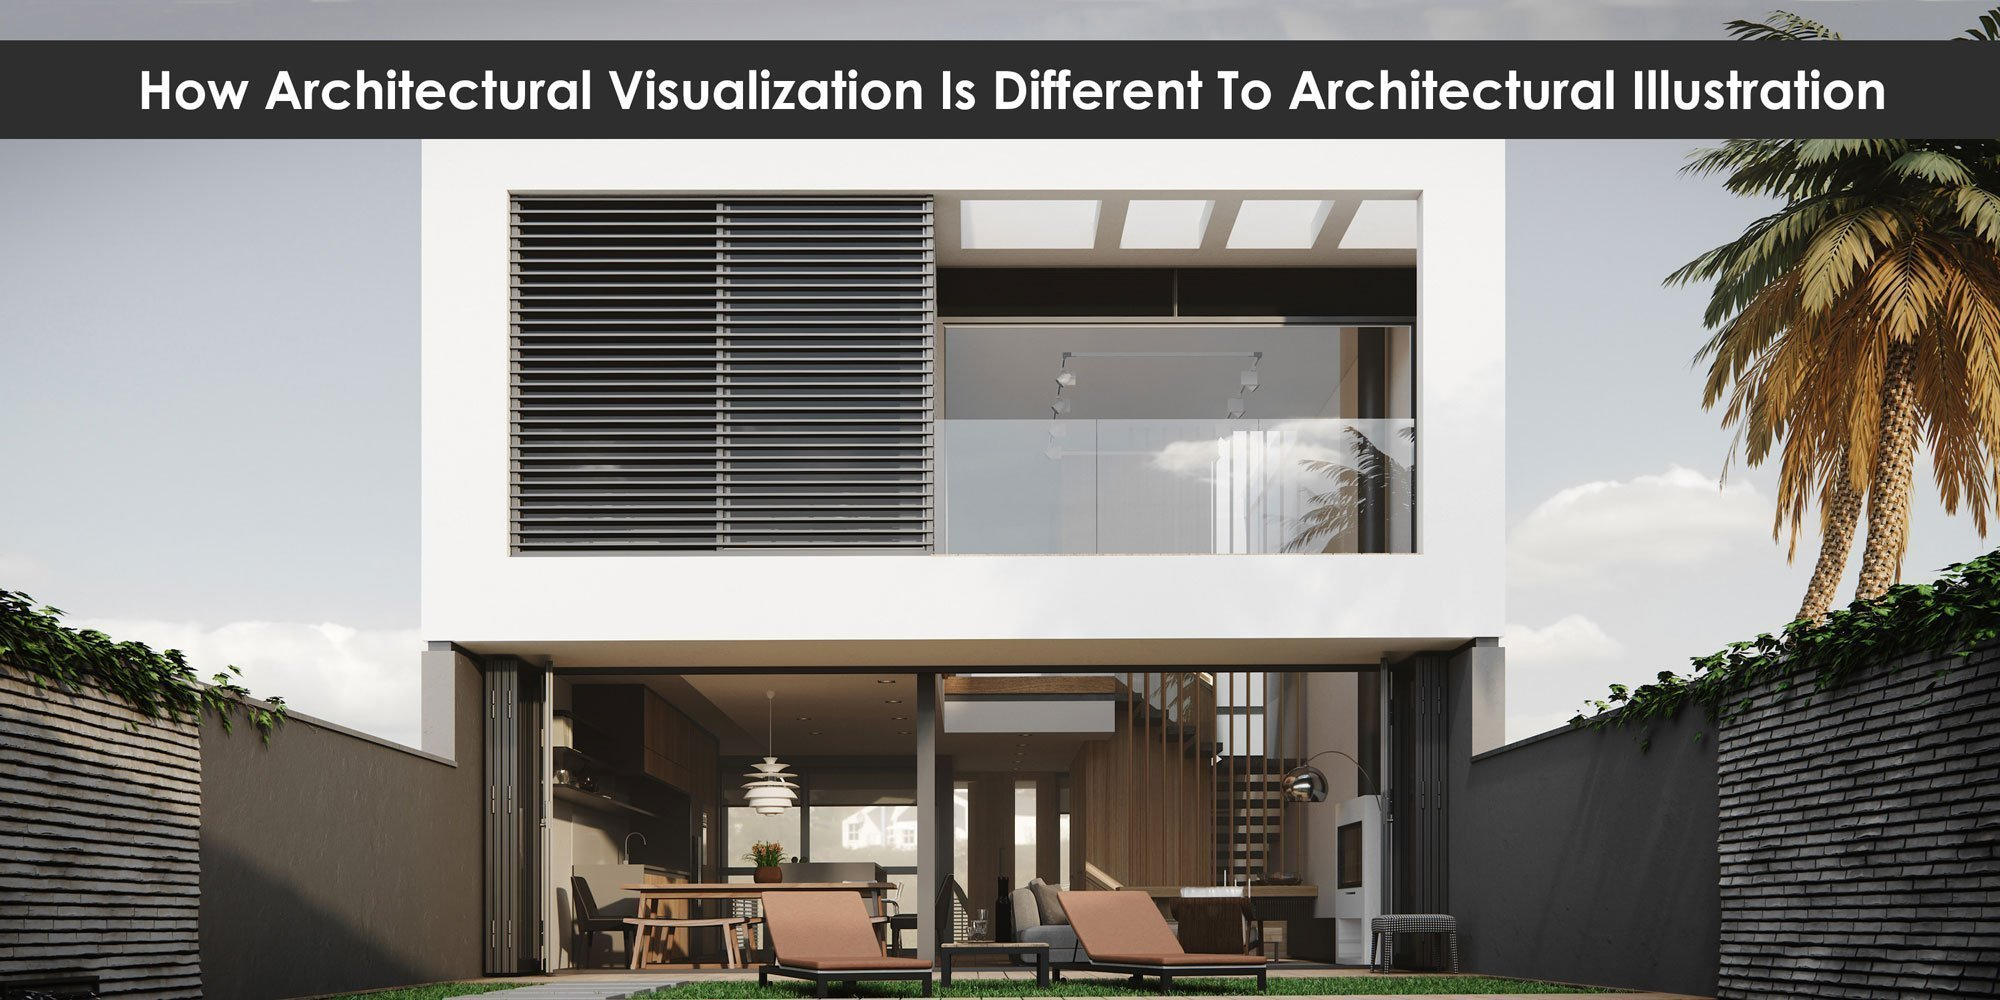 How 3D Architectural Visualization Is Different To 2D Architectural Illustration